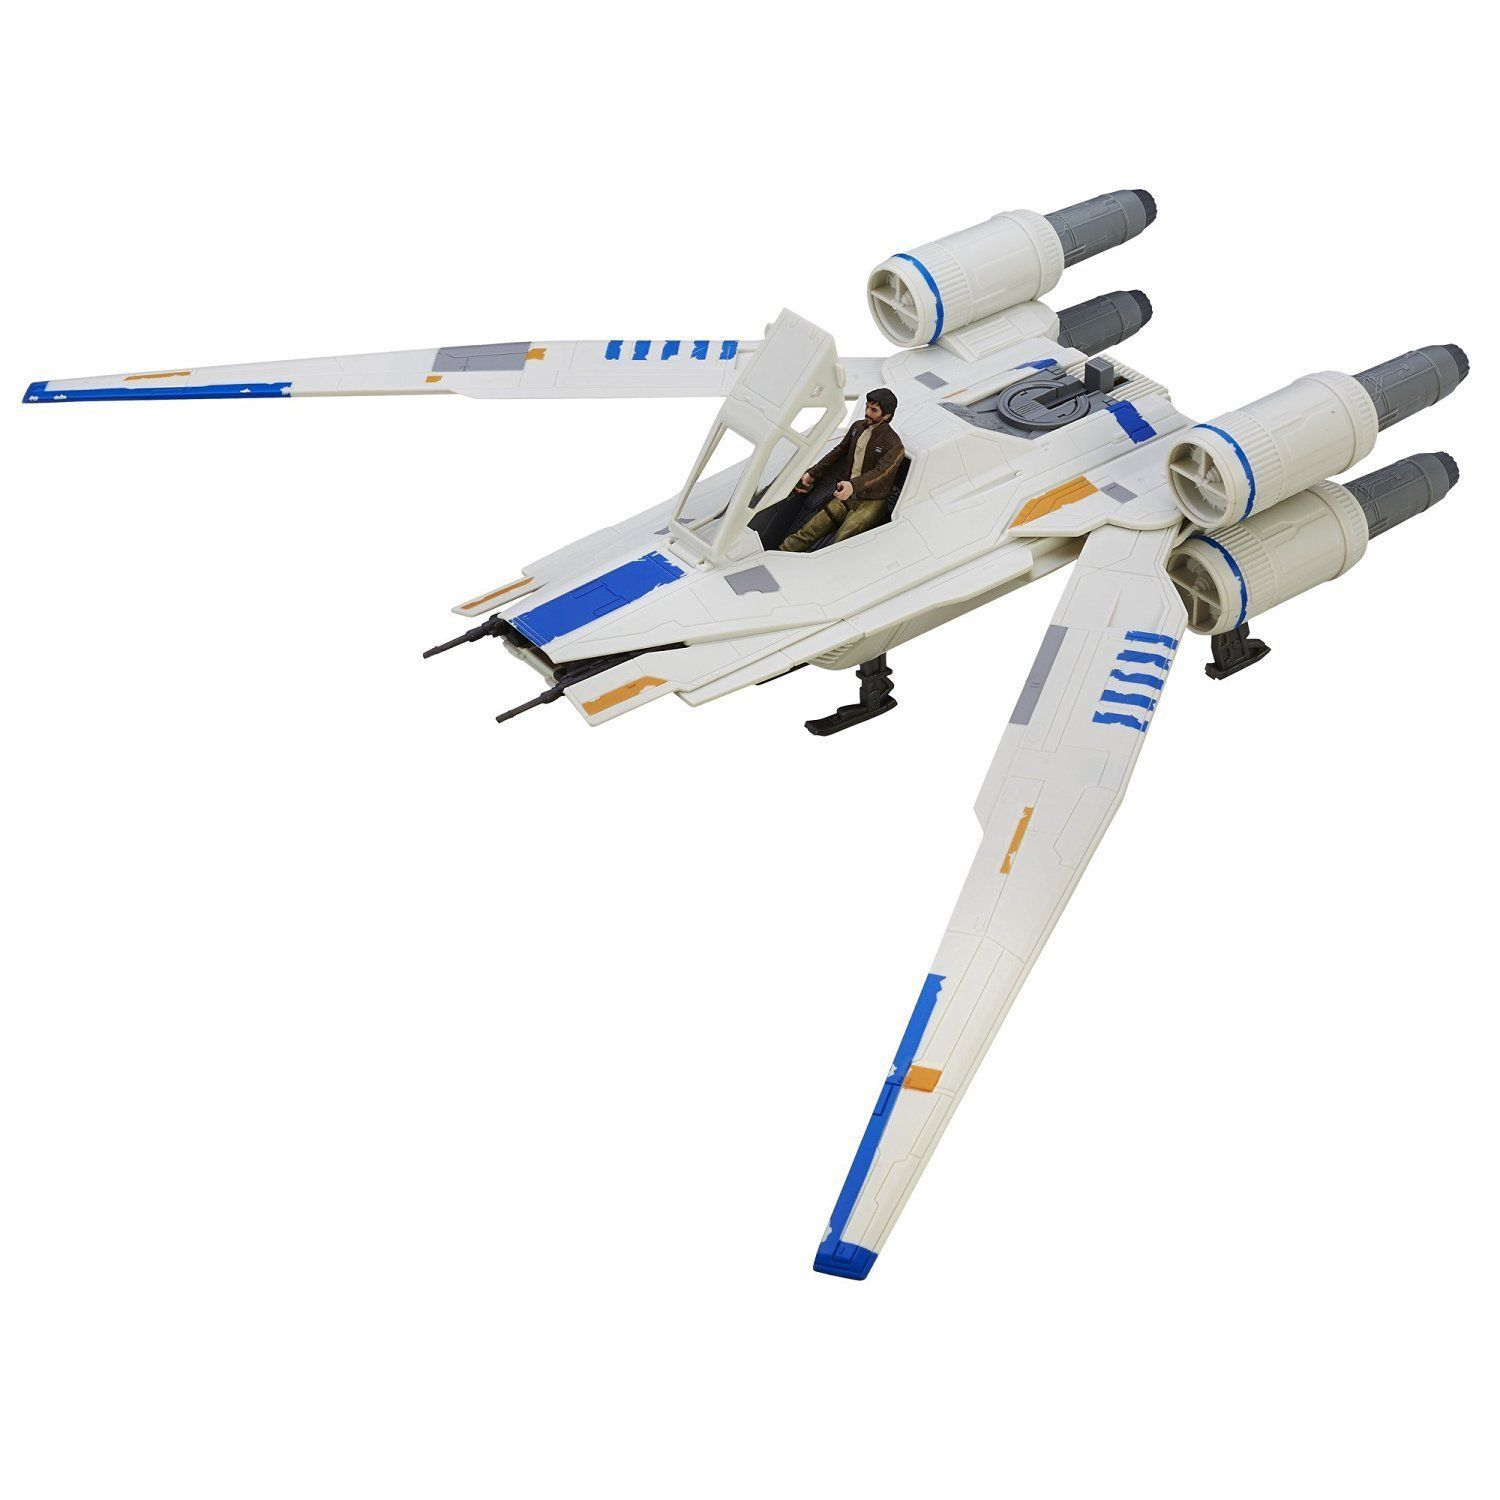 Image 1 of Star Wars Rogue One Rebel U-Wing Fighter Vehicle, Hasbro, 6+